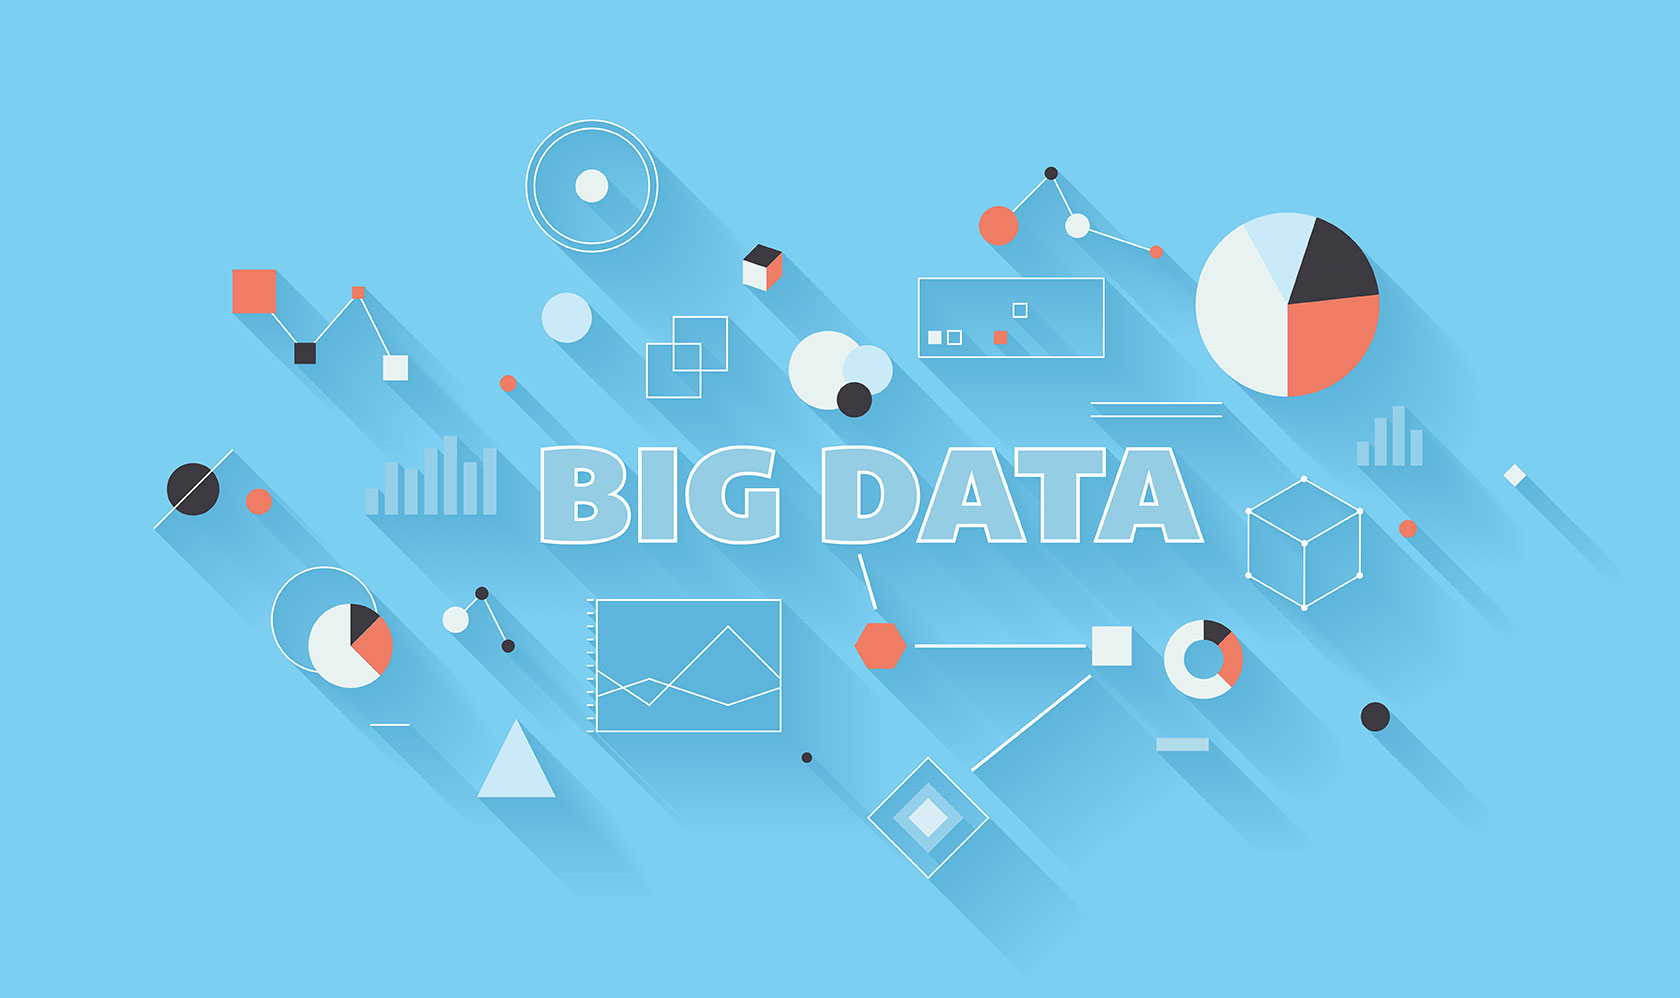 Cubical home automation blogs big data analytics